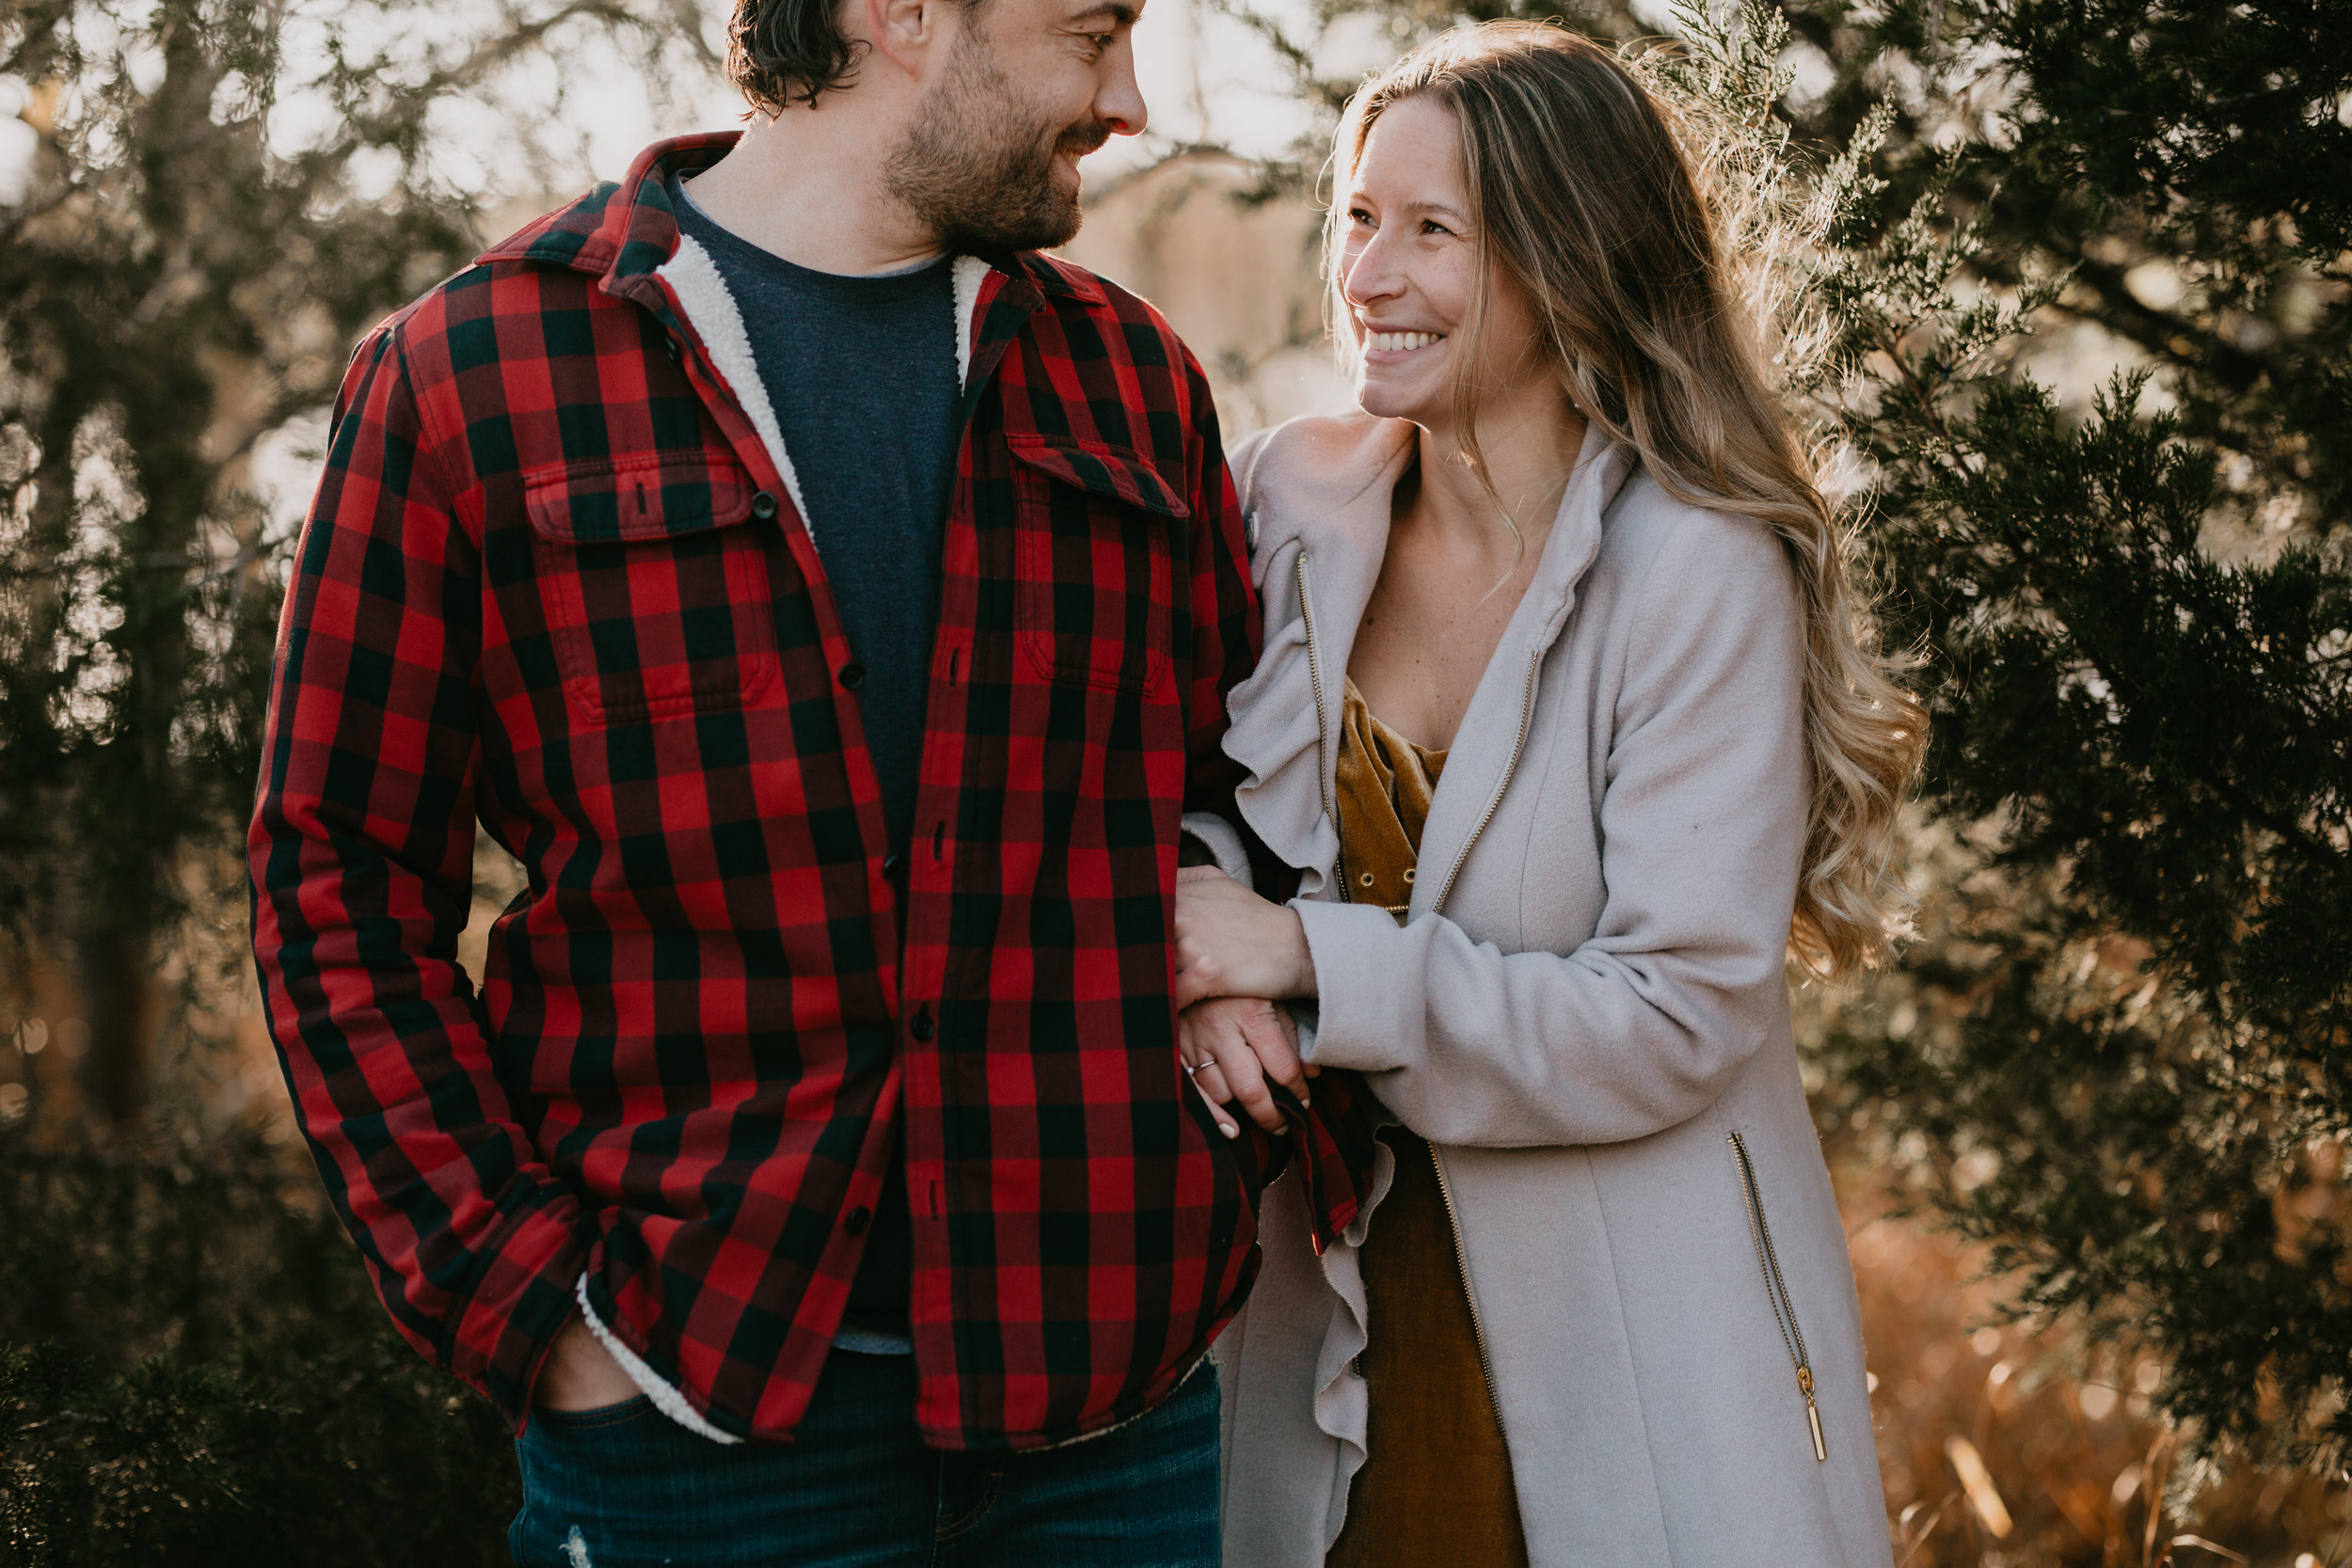 nicole-daacke-photography-white-cliffs-of-conoy-in-lancaster-pa-pennsylvania-adventure-session-adventure-elopement-photographer-engagement session-in-lancaster-pa-photographer-golden-sunset-winter-solstice-wedding-riverside-elopement-4767.jpg